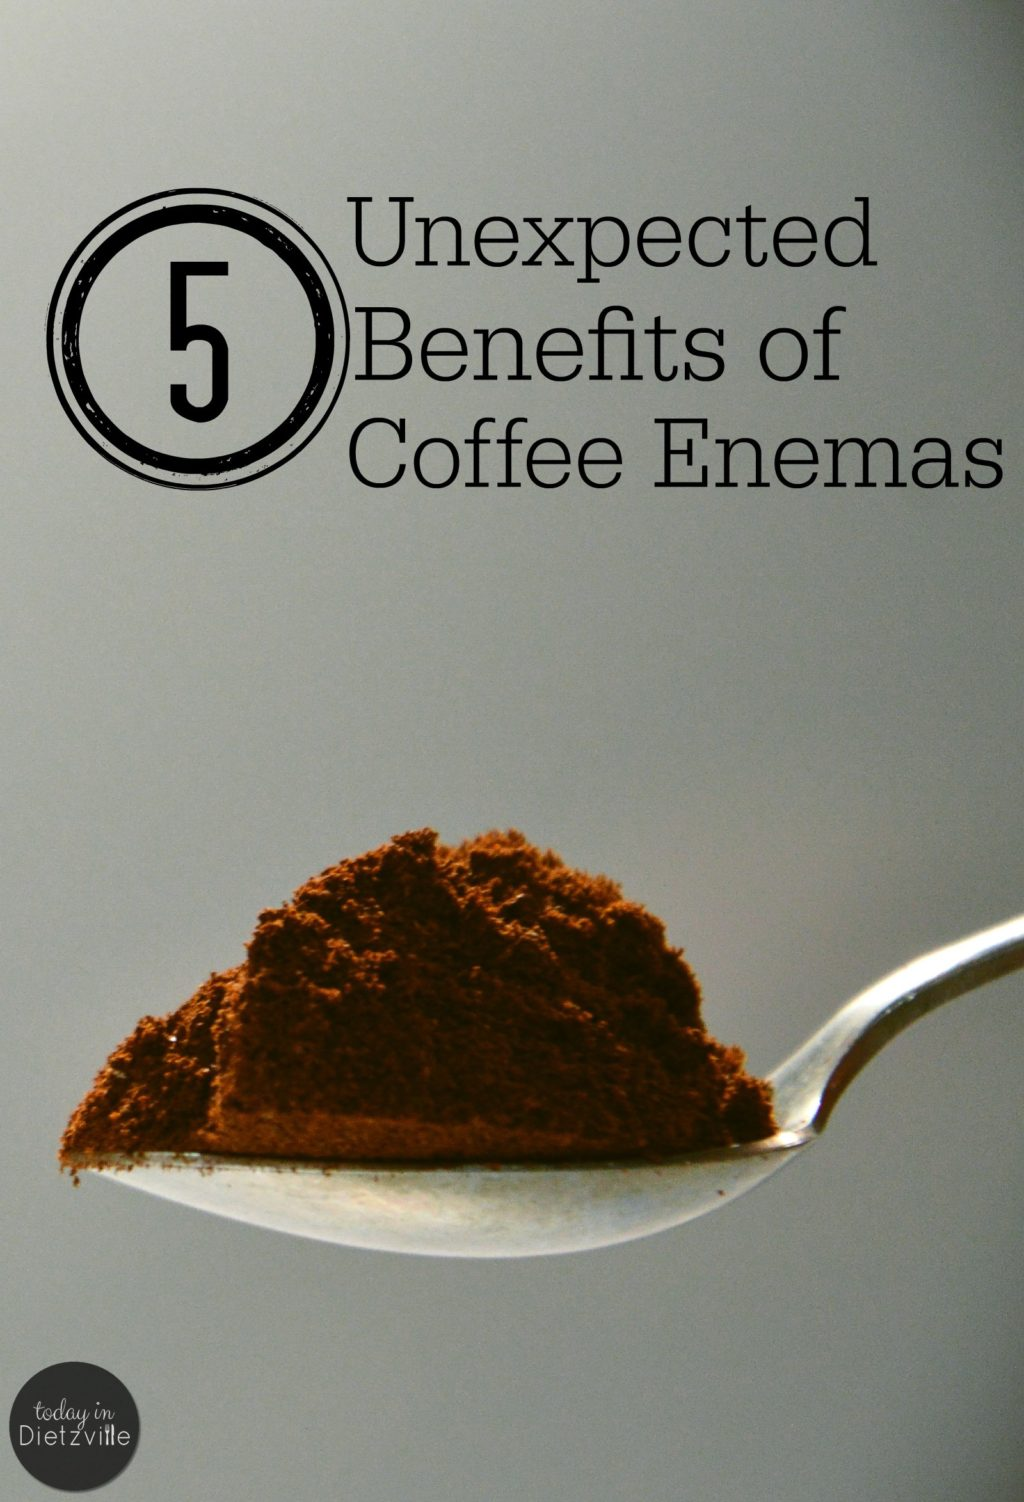 5 Unexpected Benefits Of Coffee Enemas For Women | It's no secret that I believe in the amazing benefits of coffee enemas. I've seen firsthand the healing power that coffee enemas have had on my digestive system. I was expecting that. However, I wasn't expecting these 5 perks -- and they're all specific to being a woman! | TodayInDietzville.com